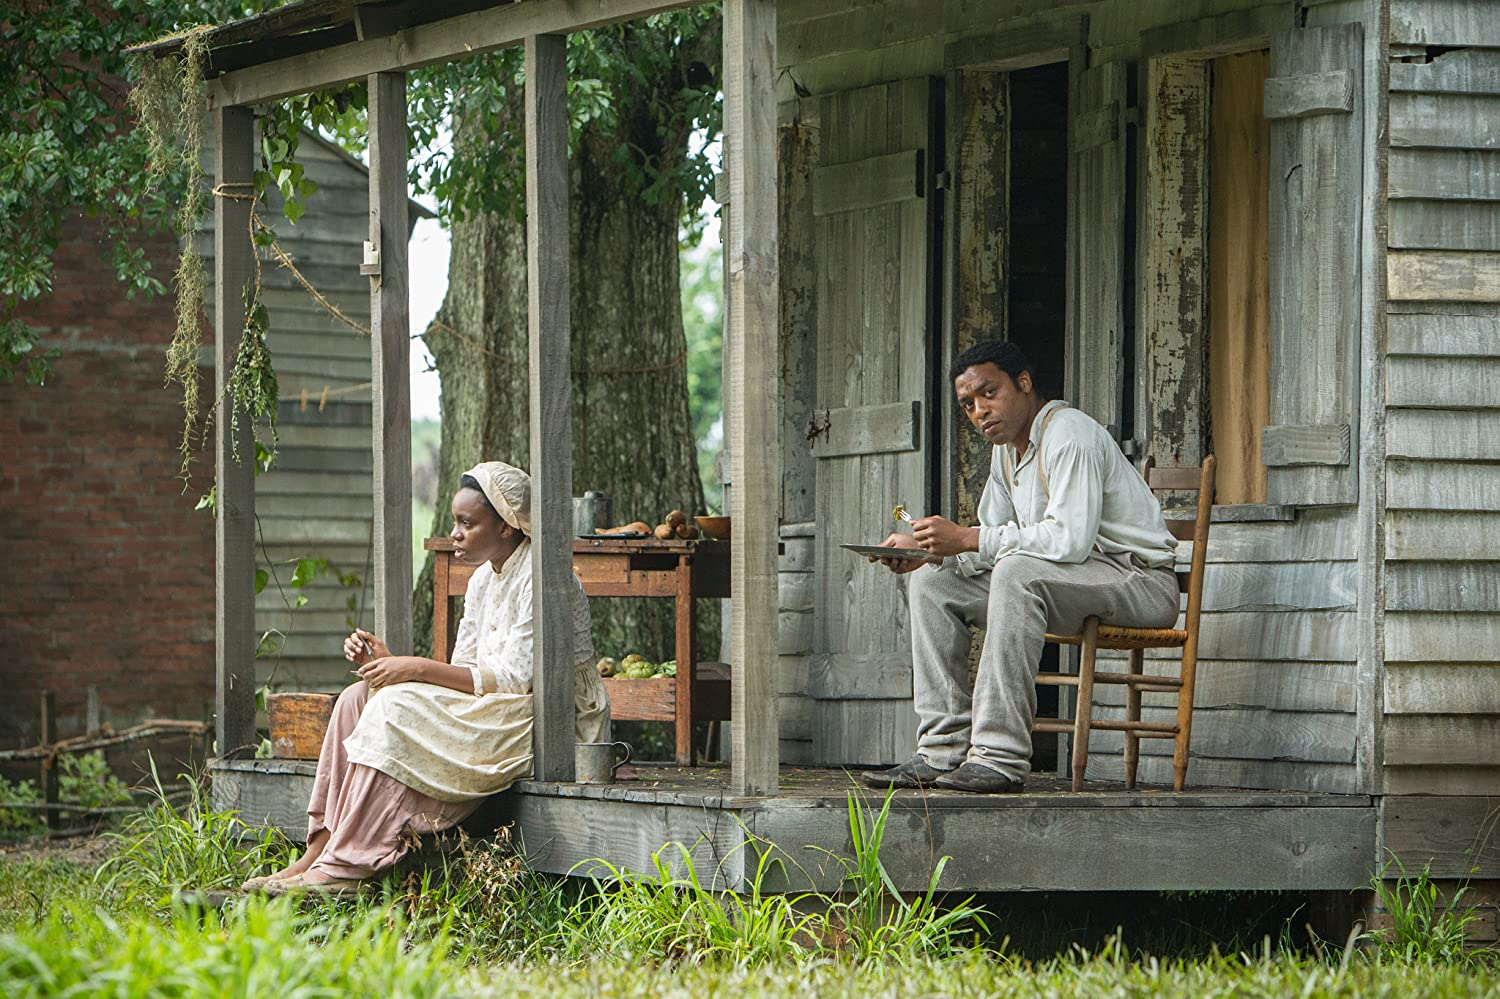 Chiwetel Ejiofor and Adepero Oduye in 12 Years a Slave (2013)